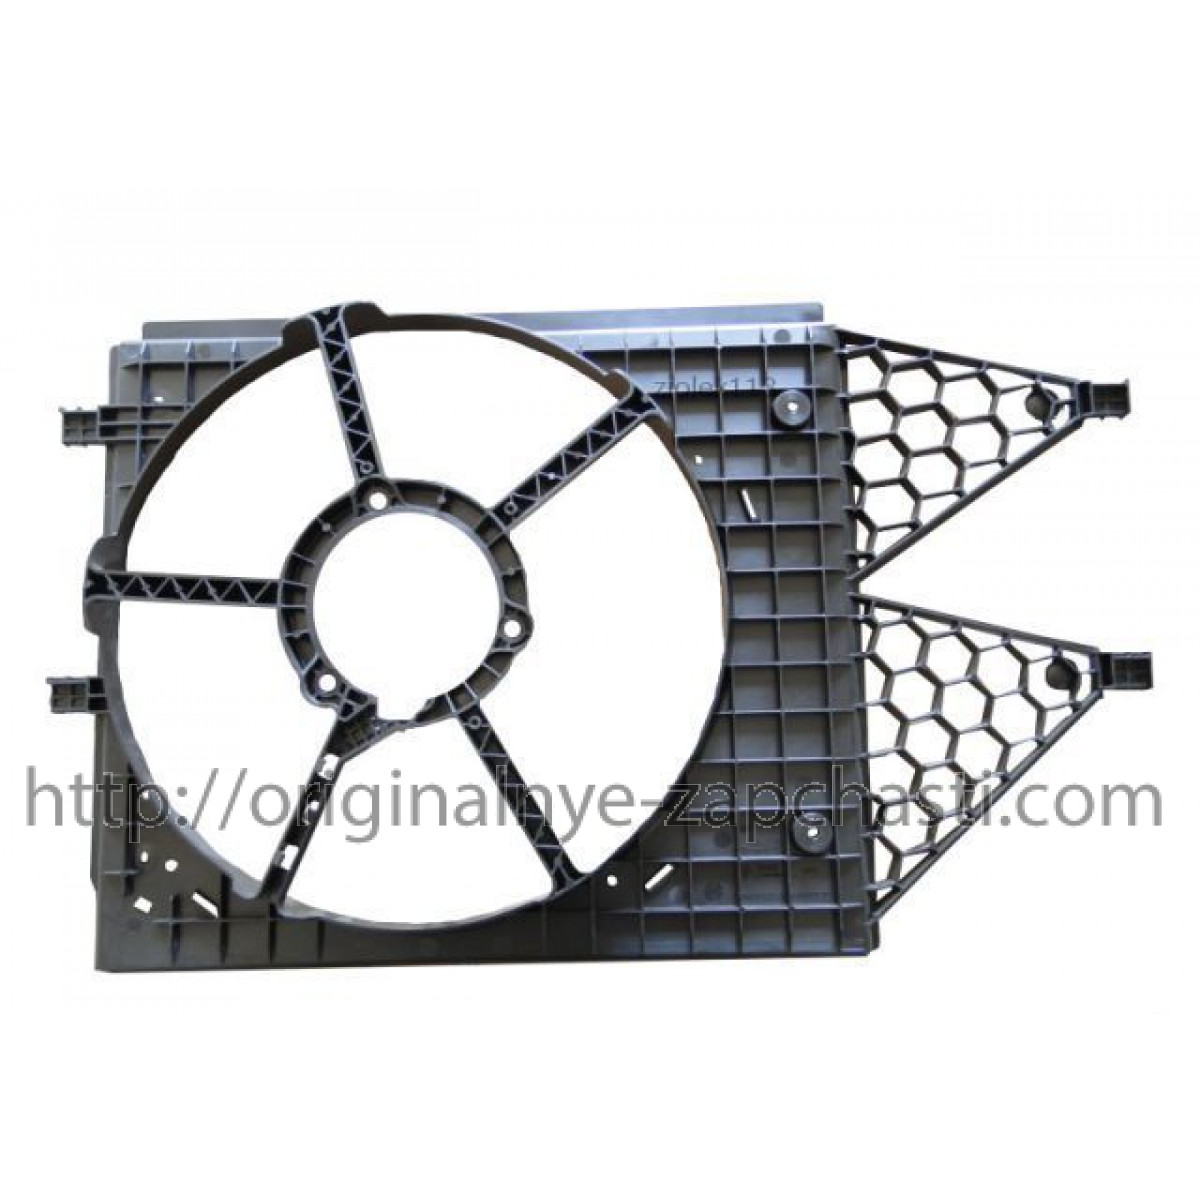 FAN DAVLUMBAZI ( 1.2 DİZEL ) POLO 2009- - Oem No: 6R0121207